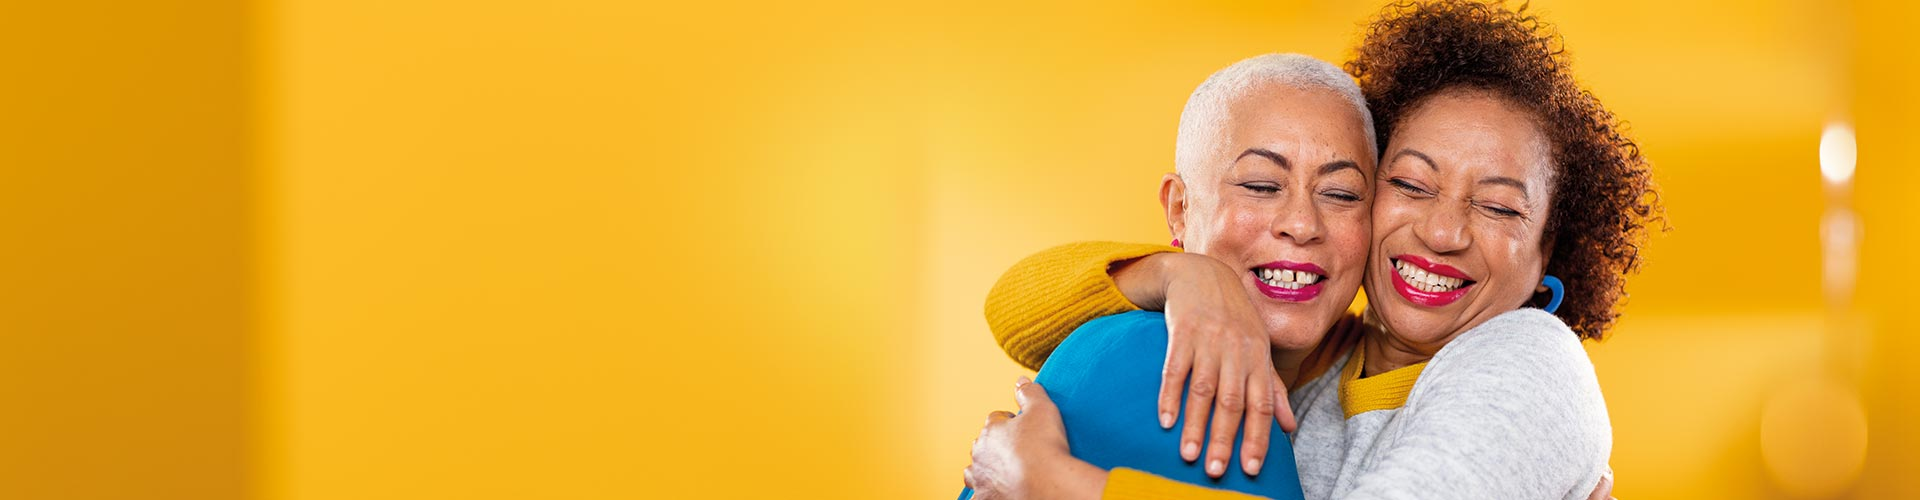 Two middle-aged women hugging each other. One is wearing Philips HearLink behind-the-ear hearing aids.